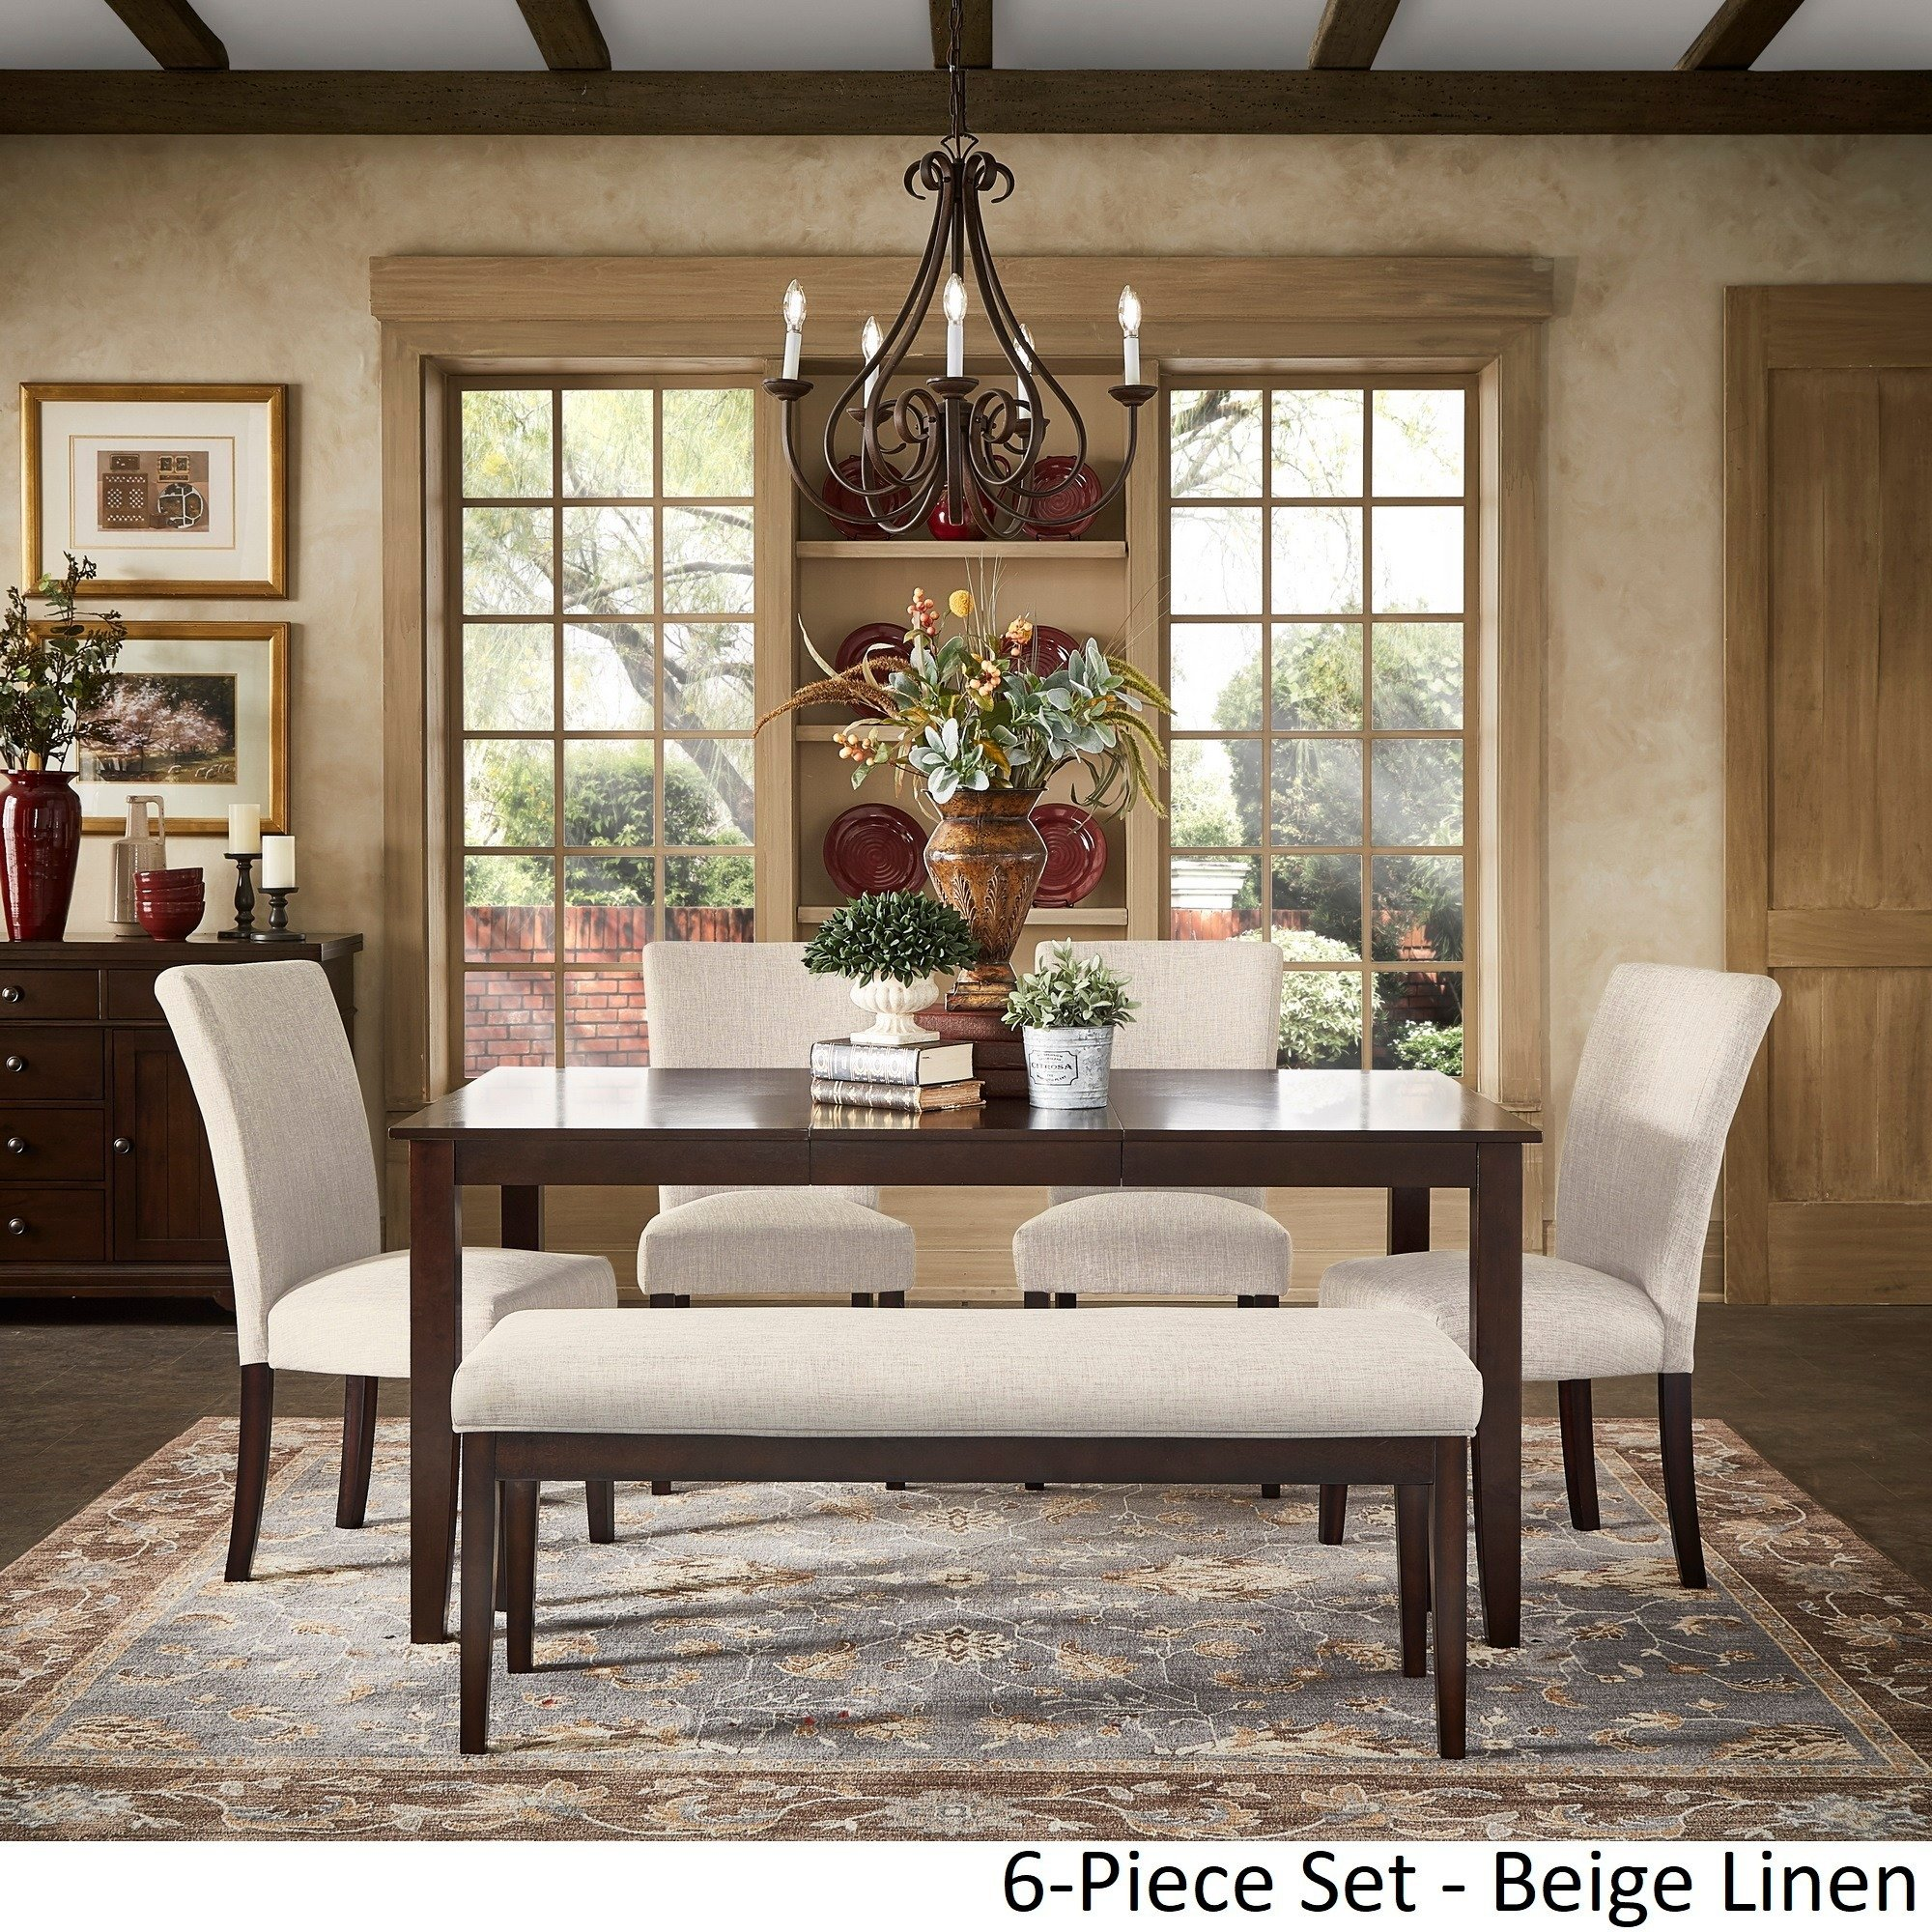 pranzo rectangular inch extending dining table set inspire classic accent pieces free shipping today silver living room accessories bedroom desk wood patio end small grey coffee